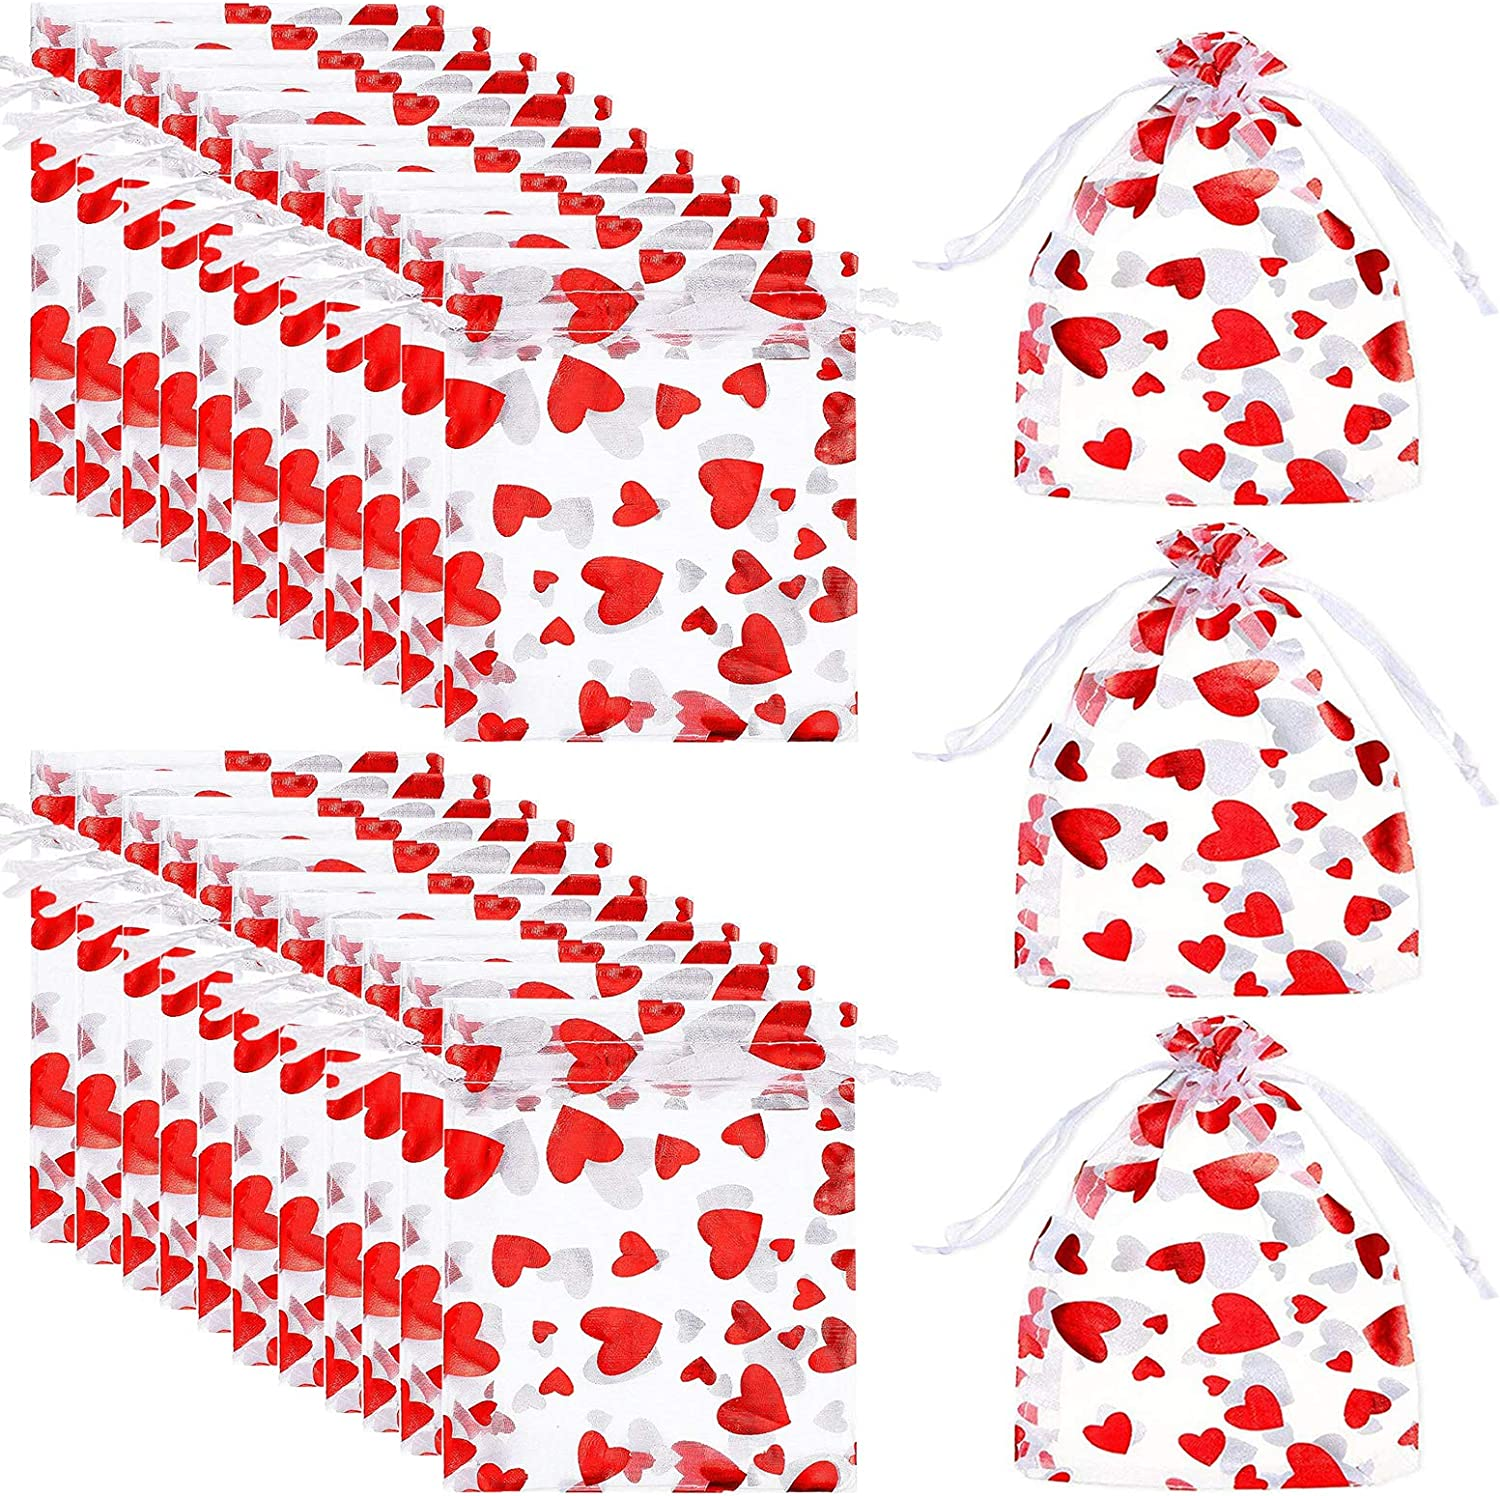 Llxieym 150 Pieces Valentine's Day Love Heart Organza Bags Gift Bags Jewelry Pouches Drawstring Pouches Candy Goodies Bags Food Storage Bags for Valentine's Day Wedding, 3 x 4 Inches